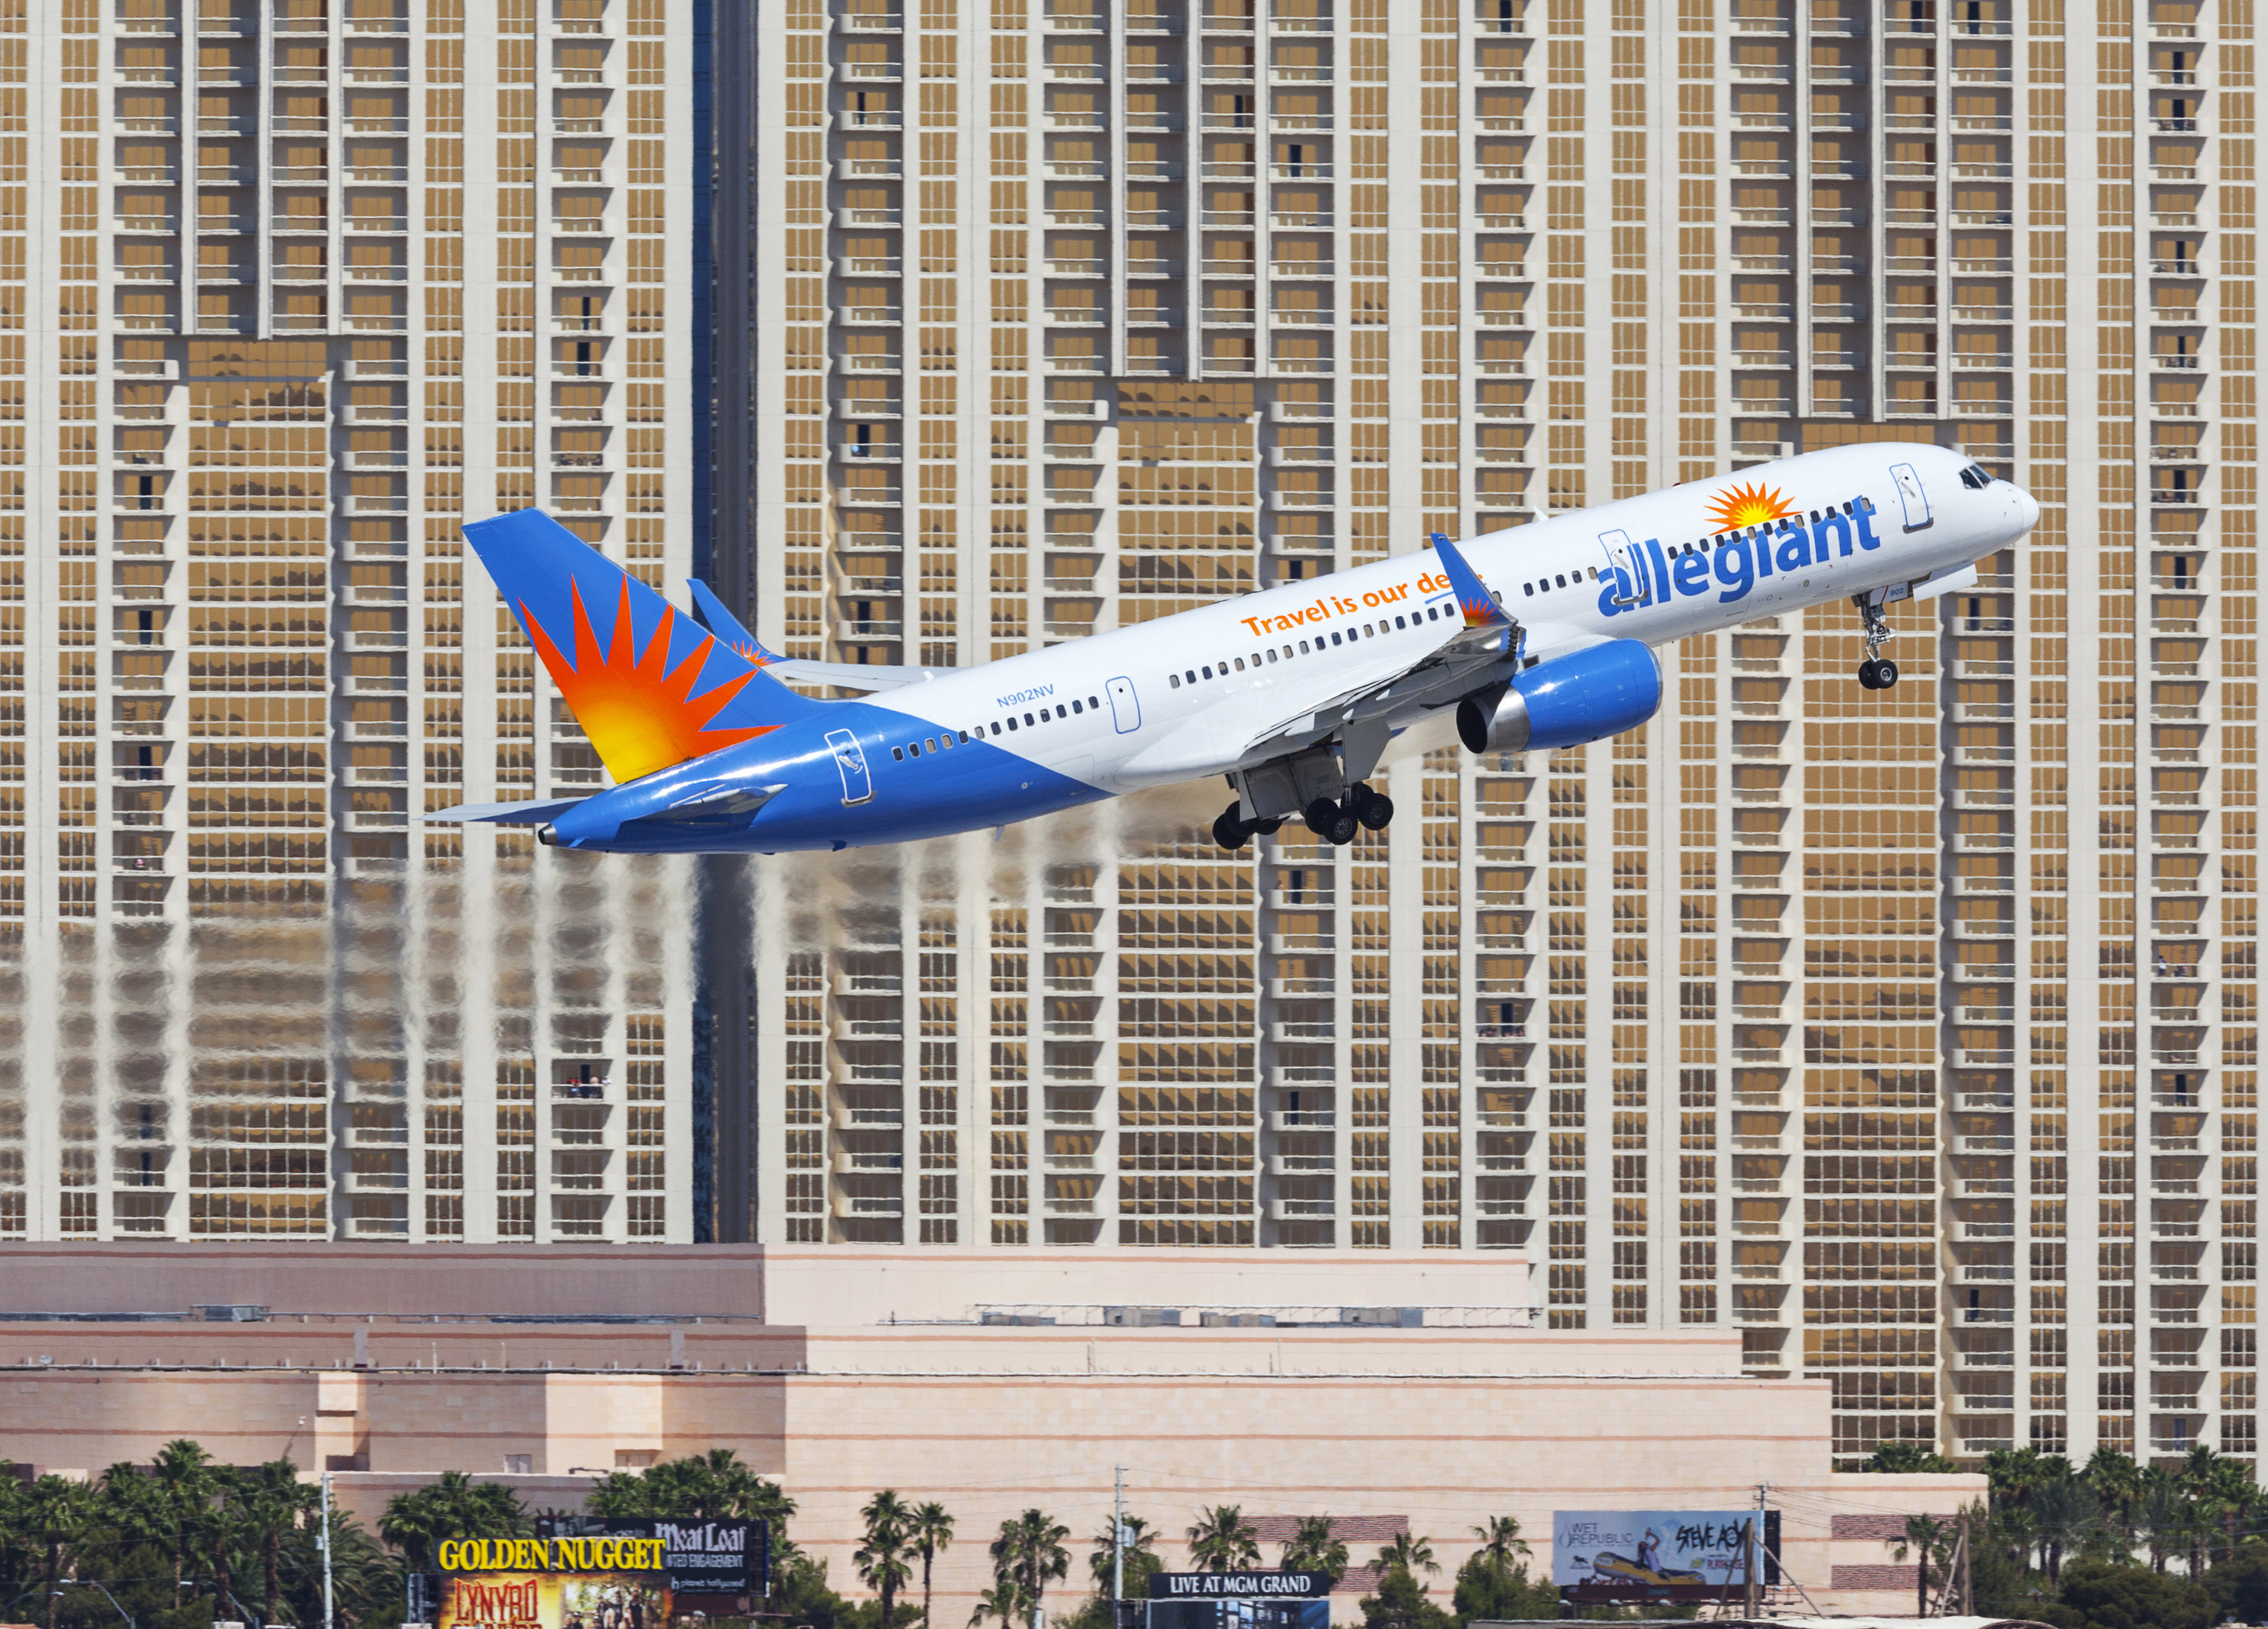 An Allegiant Airlines plane taking off from an airport